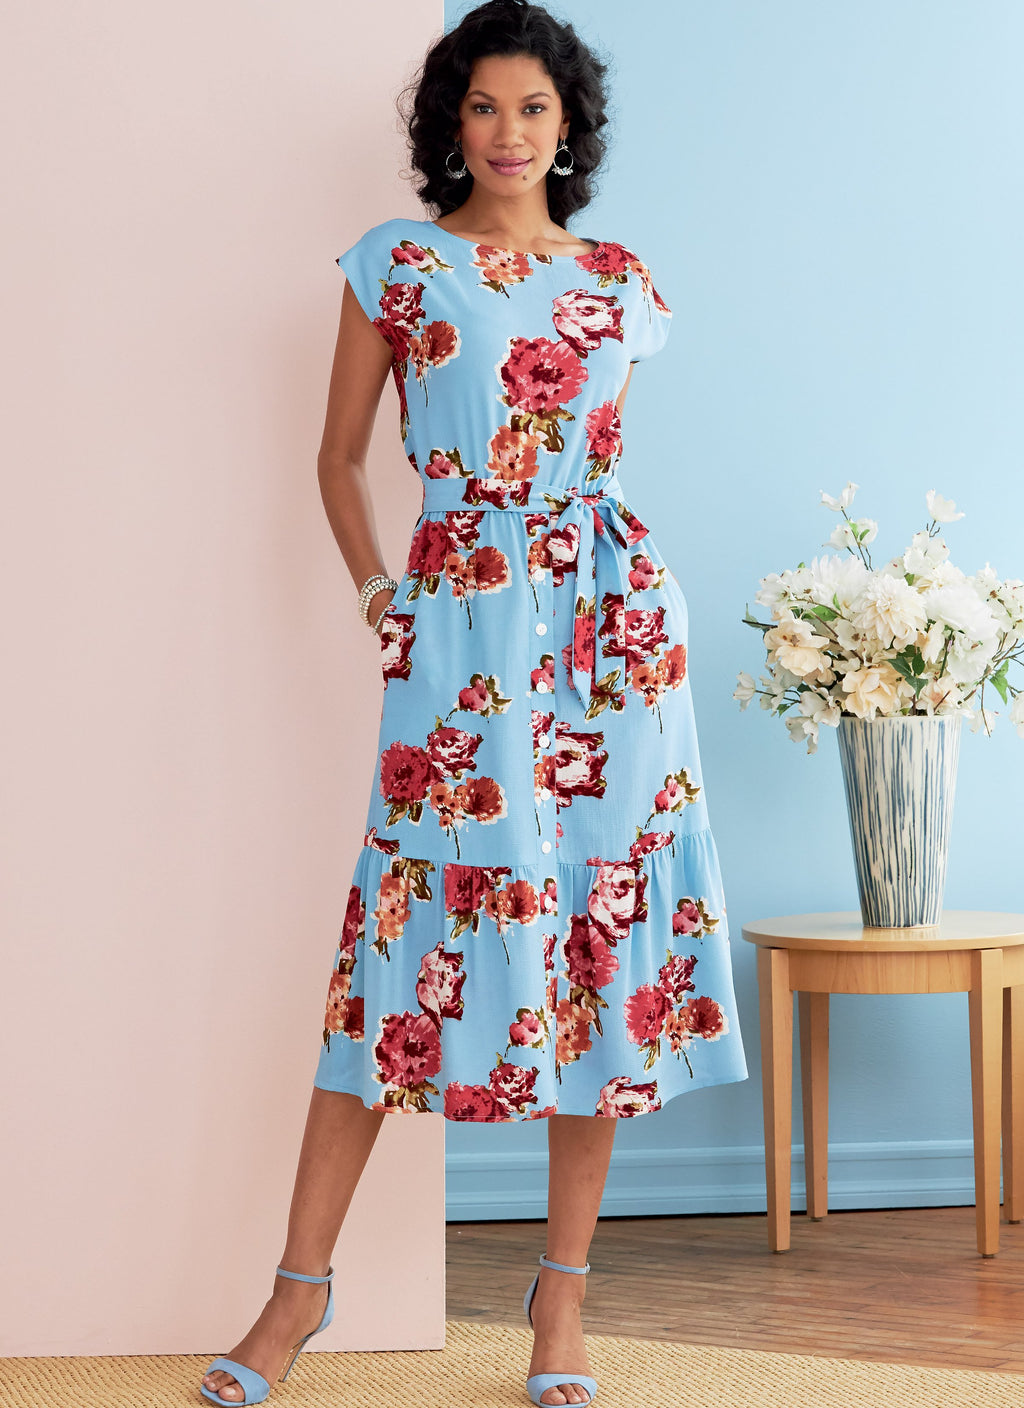 Butterick Sewing Pattern 6722 Misses' Dresses